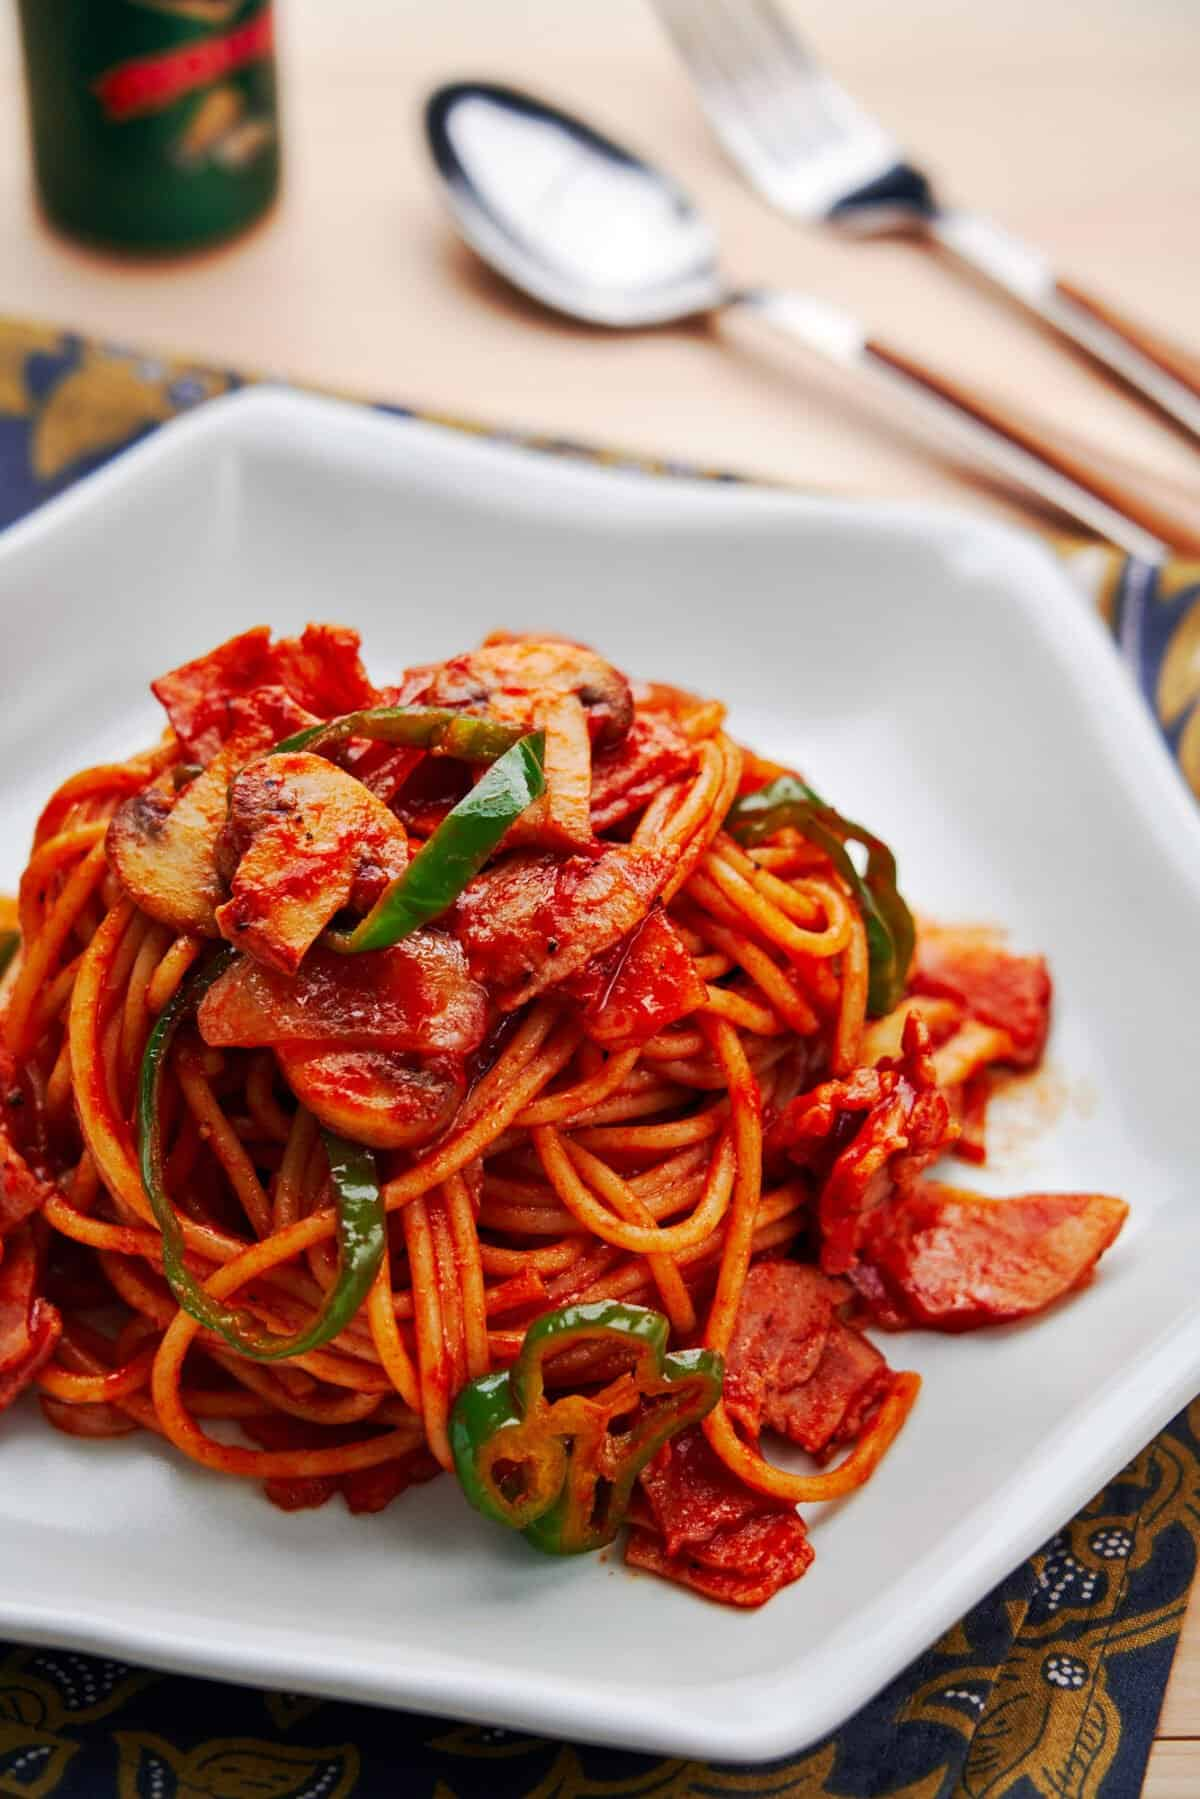 The main ingredient may surprise you, but Spaghetti Napolitan is an easy Japanese-style pasta that comes together from just a handful of pantry staples.